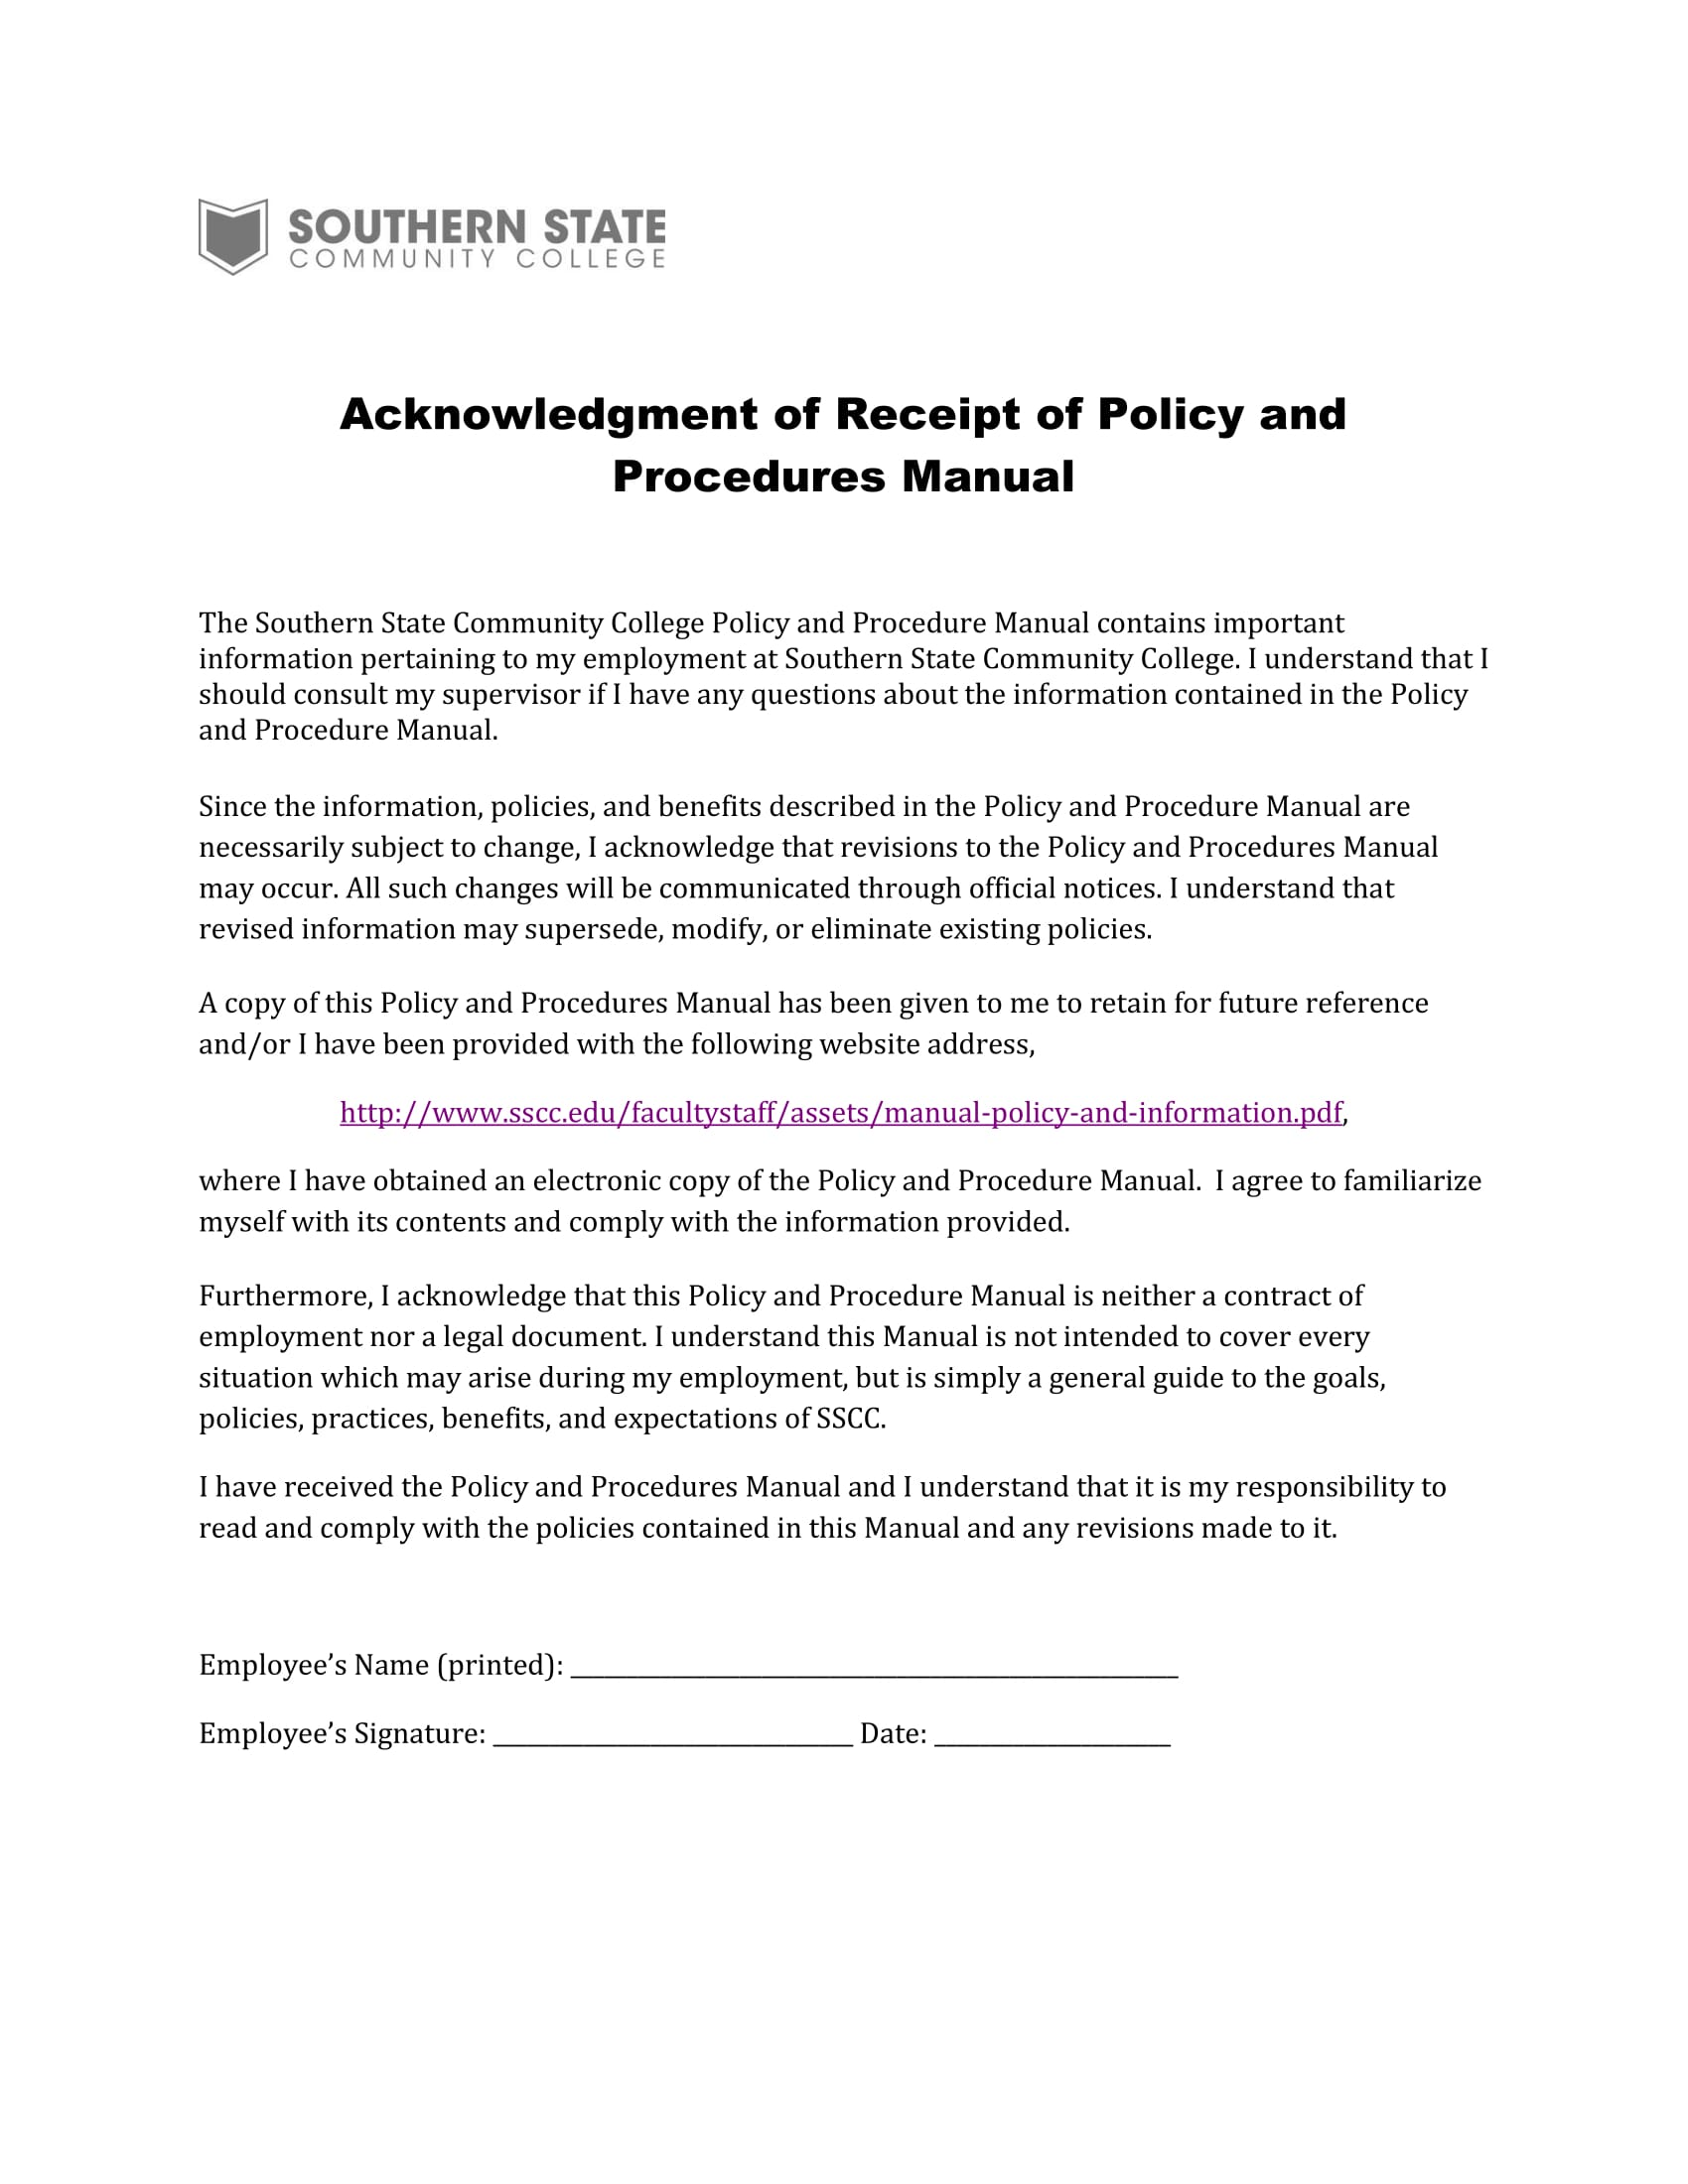 policy and procedures manual acknowledgement form 1